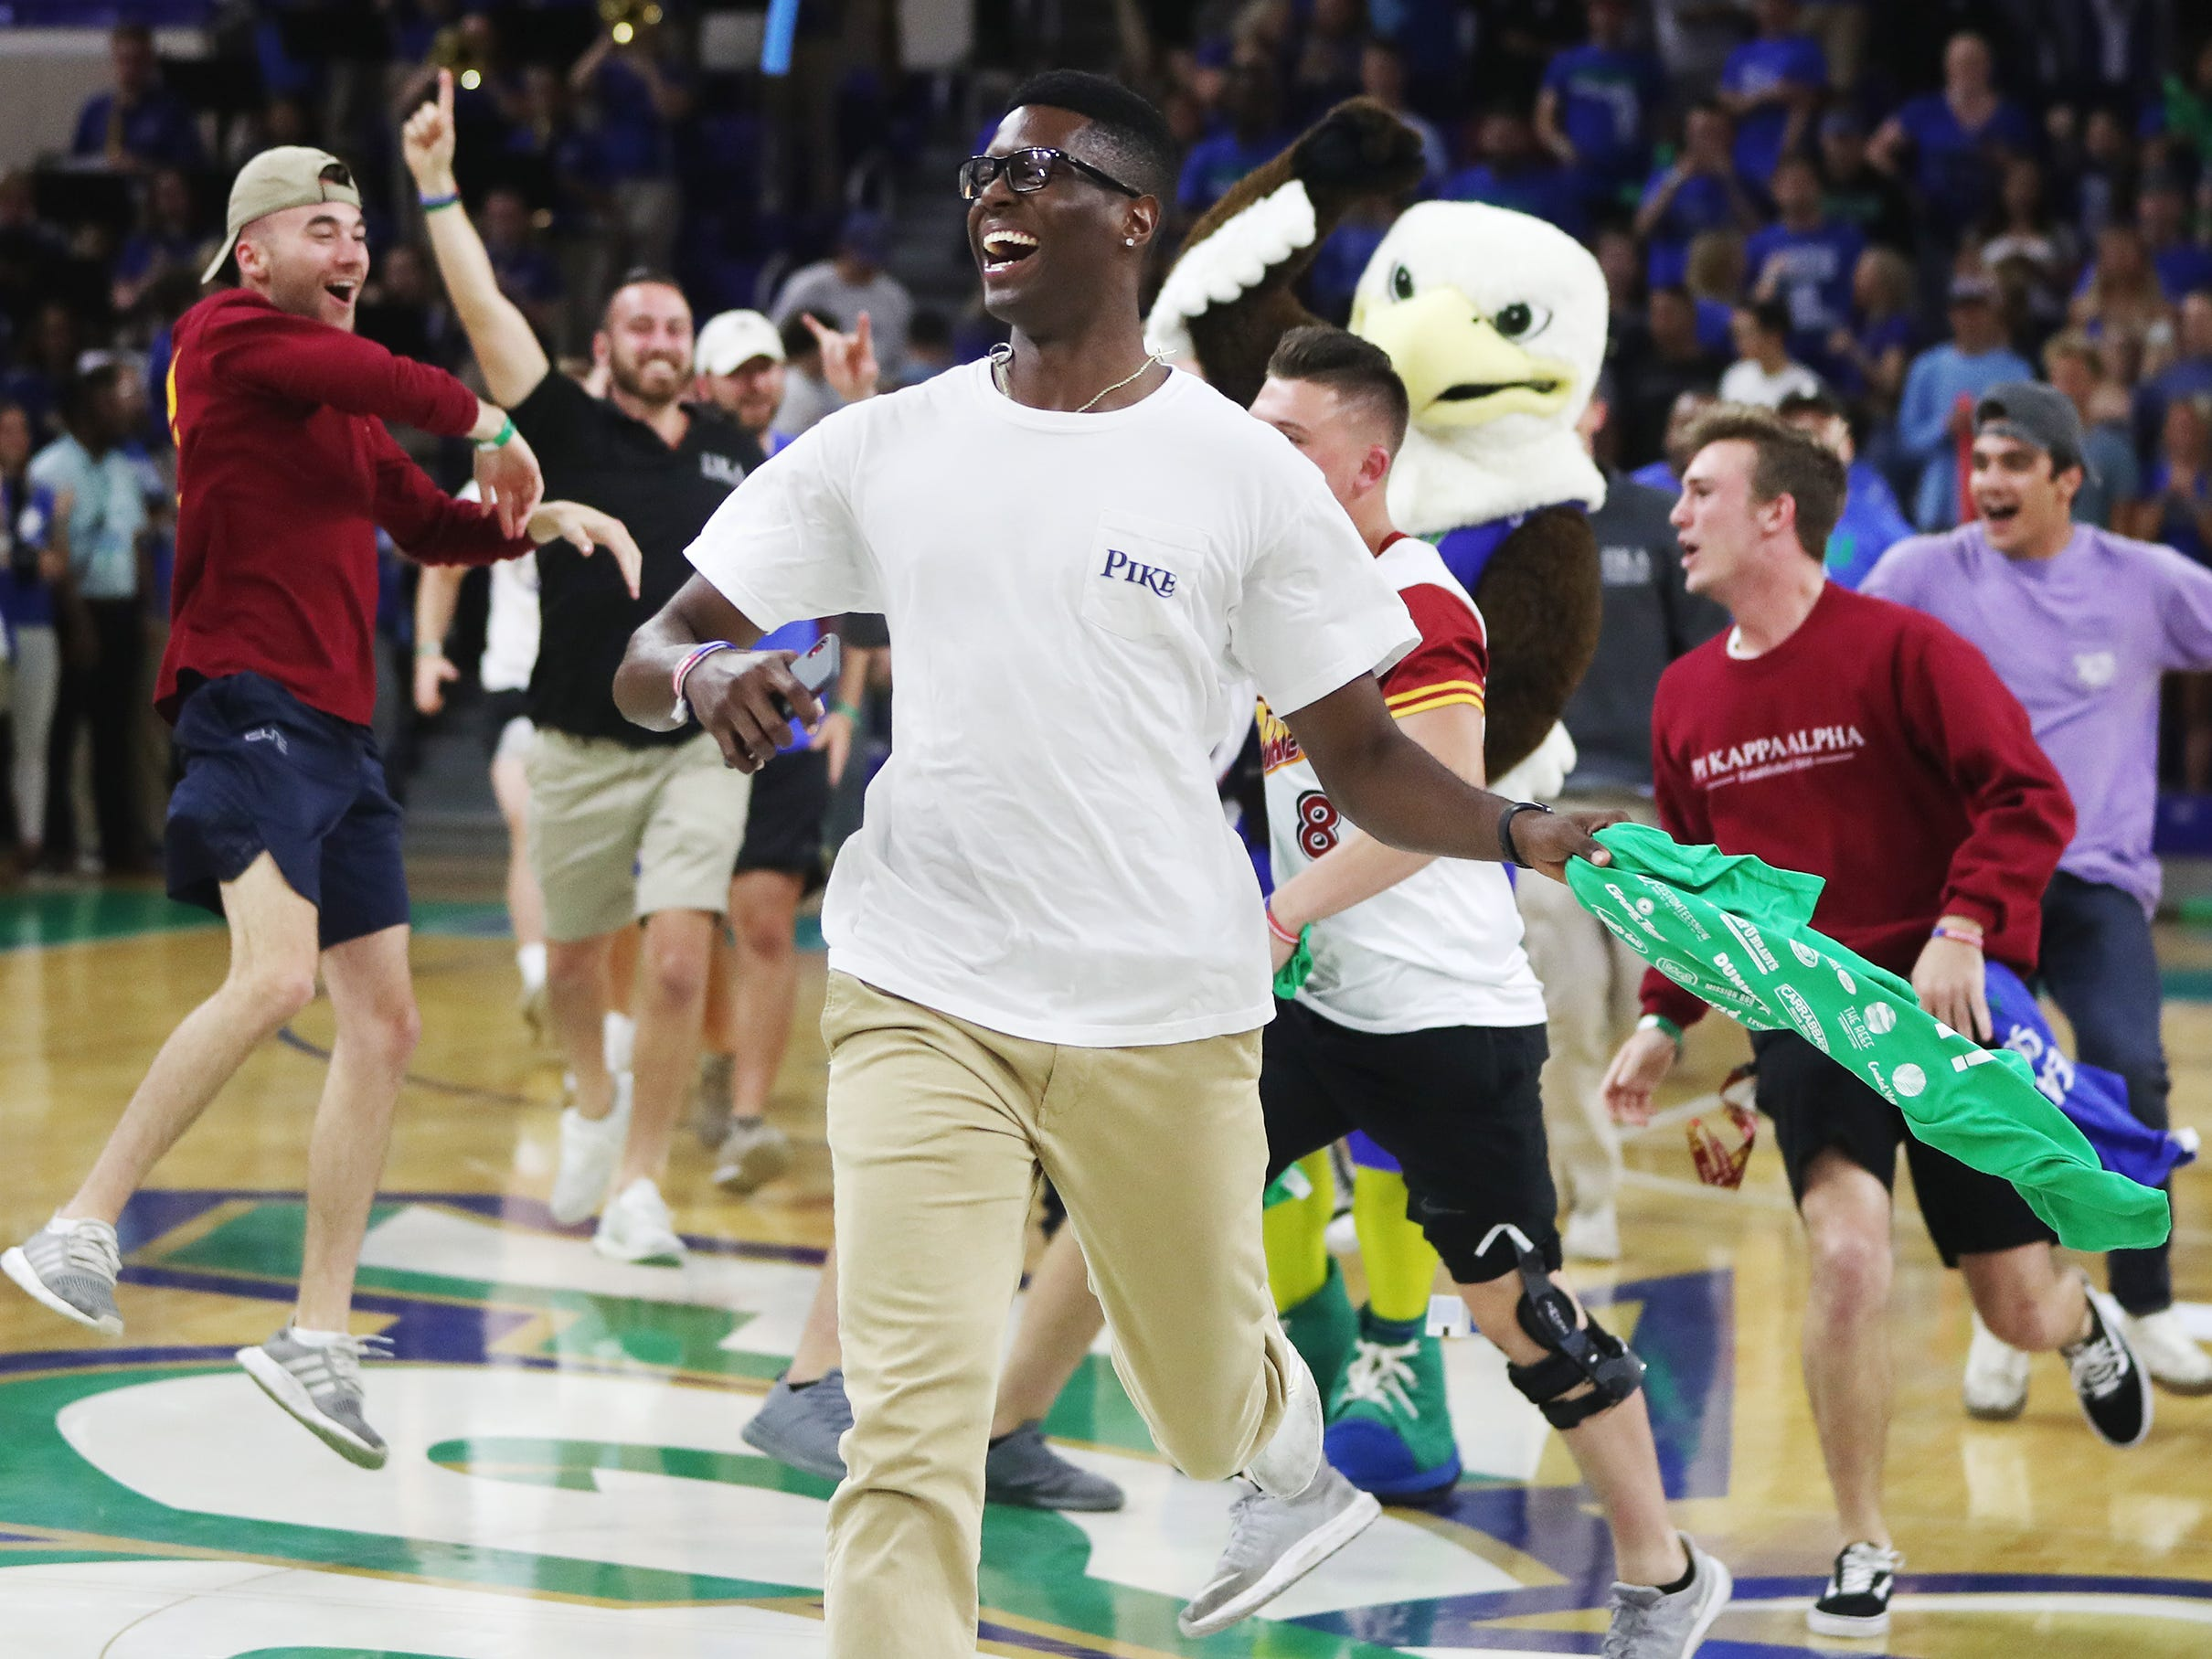 Florida Gulf Coast University fans celebrate the men's basketball team beating Lipscomb on Wednesday at FGCU in Fort Myers. FGCU beat Lipscomb 67-61.